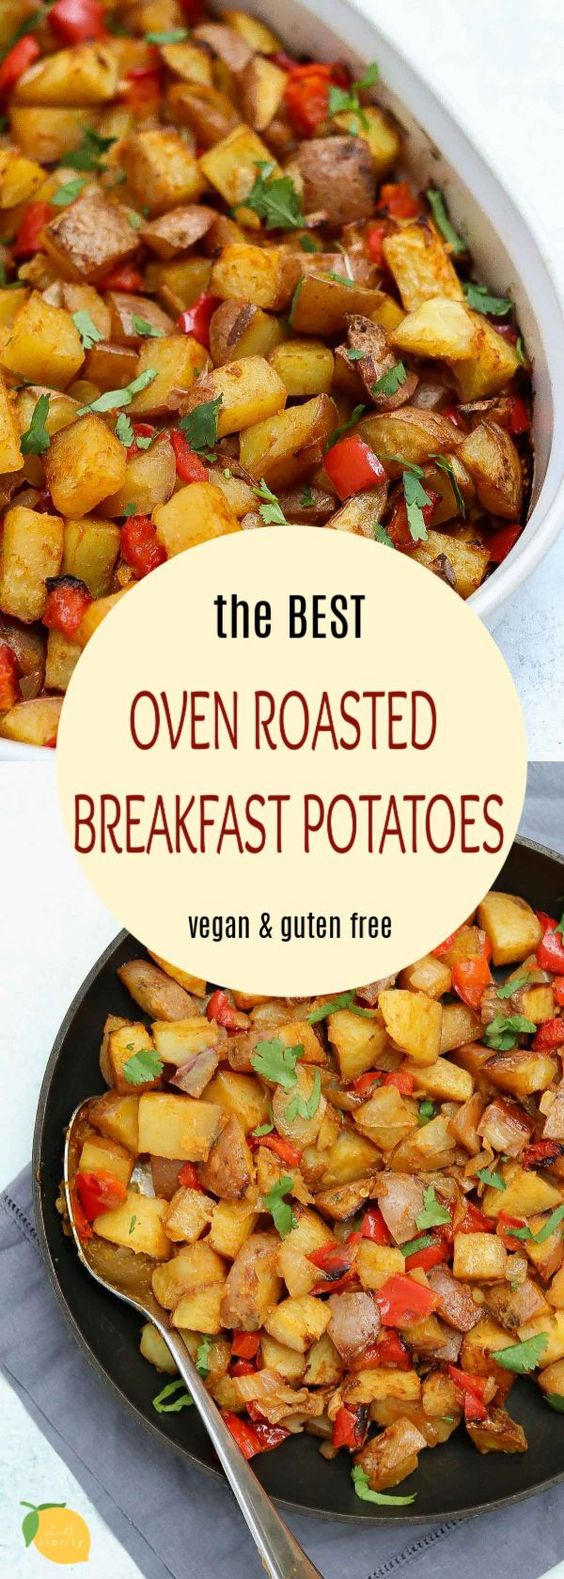 The Best Oven Roasted Breakfast Potatoes